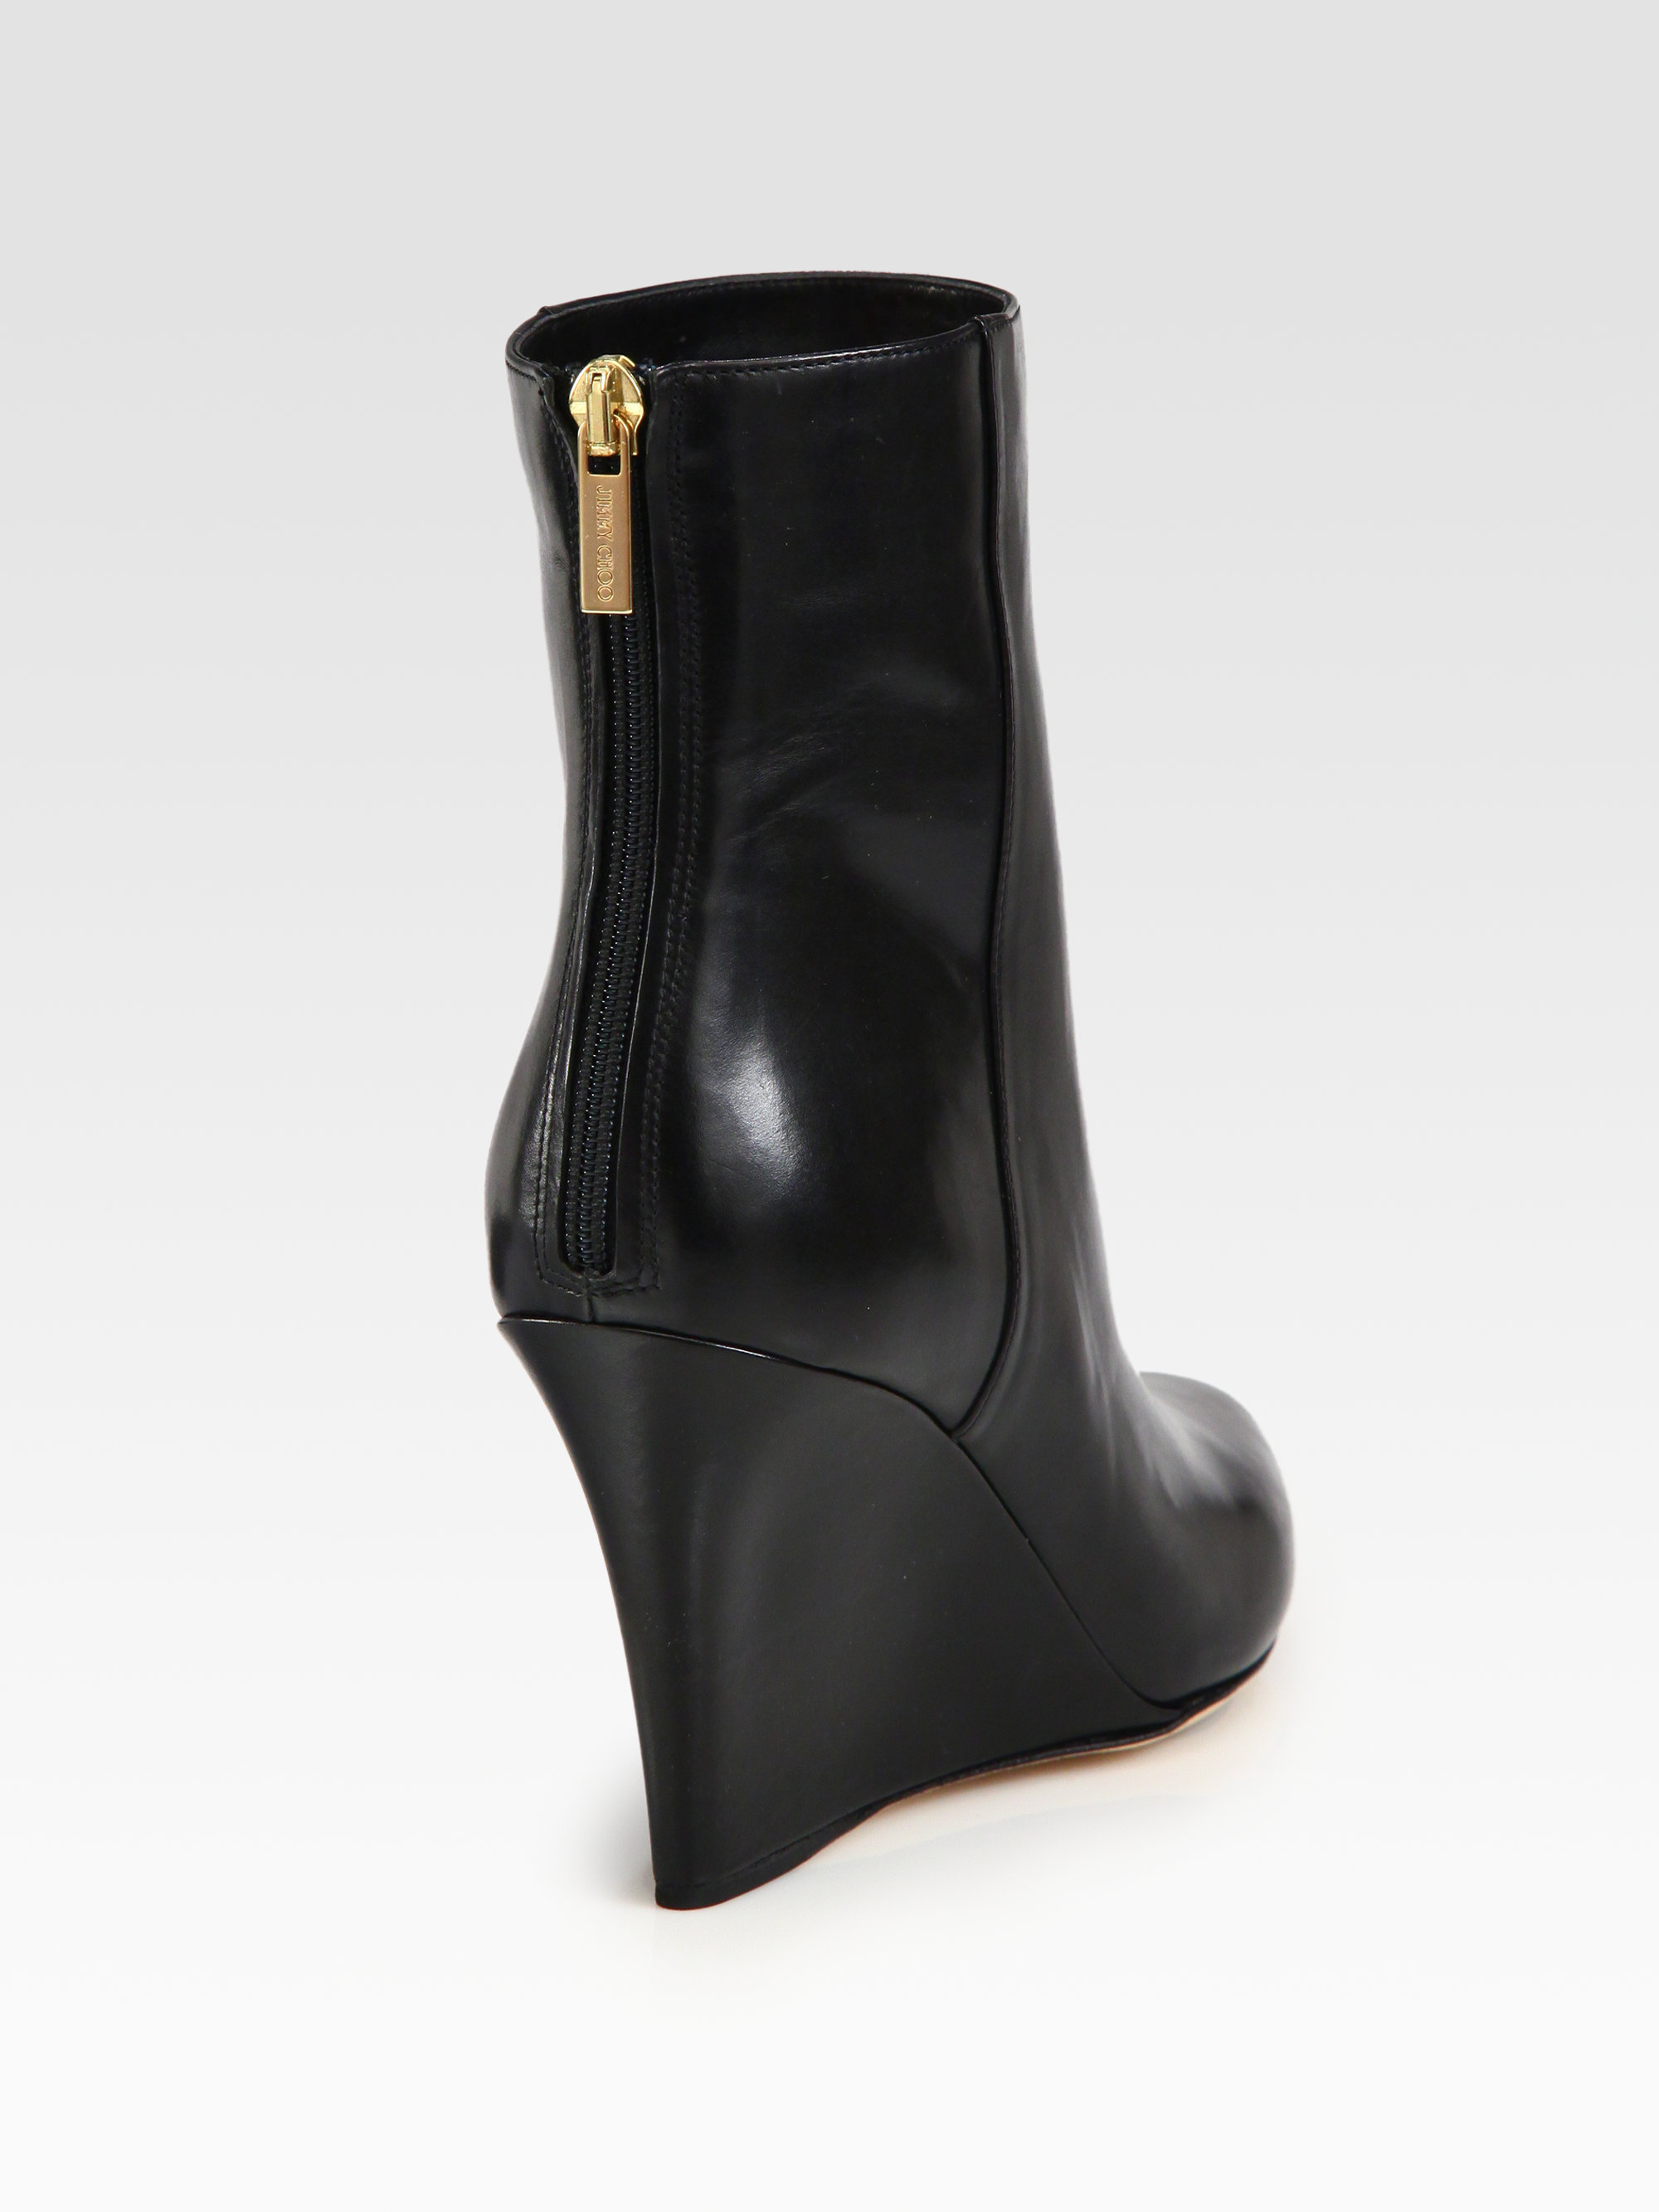 Lyst - Jimmy Choo Mayor Leather Wedge Ankle Boots in Black 5e9cb27725e3